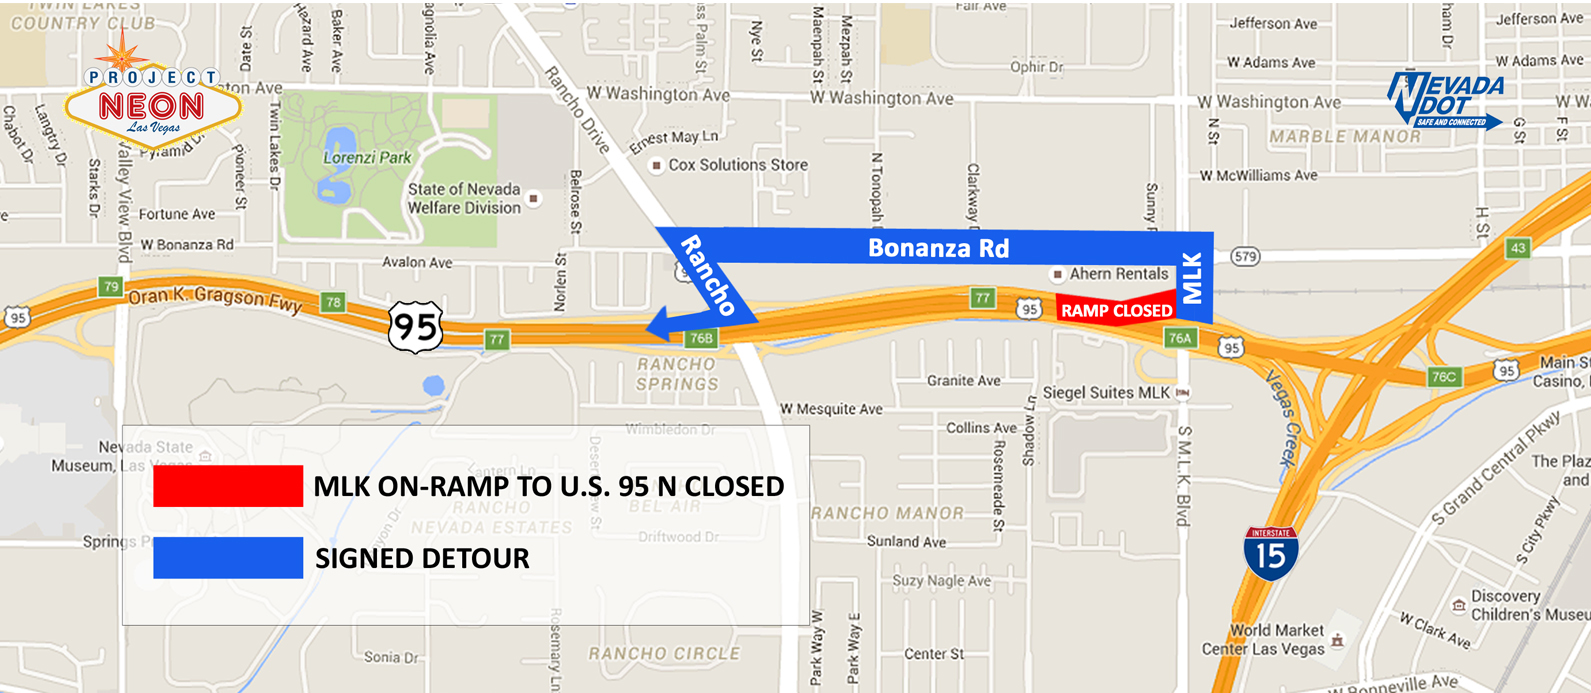 MLK on-ramp closure detour map from flyer_FINAL_160829